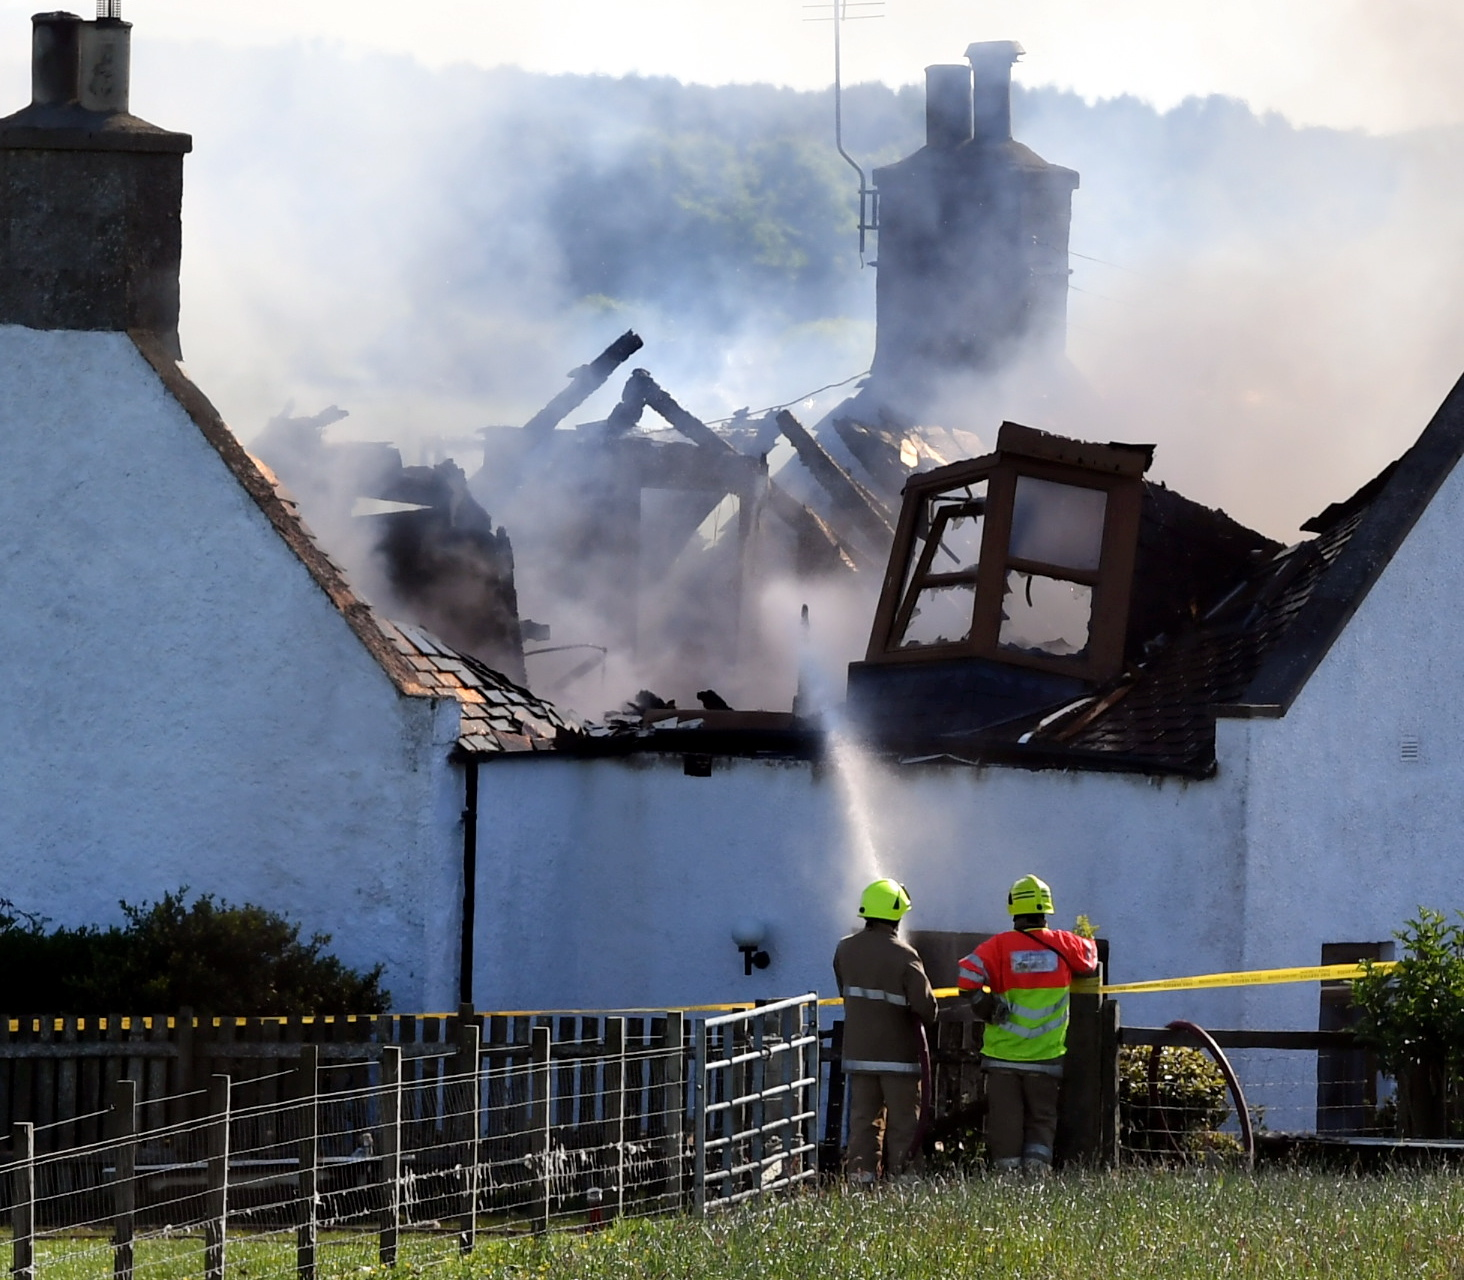 Firefighters are tackling a blaze at a property in Lethenty, near Fyvie